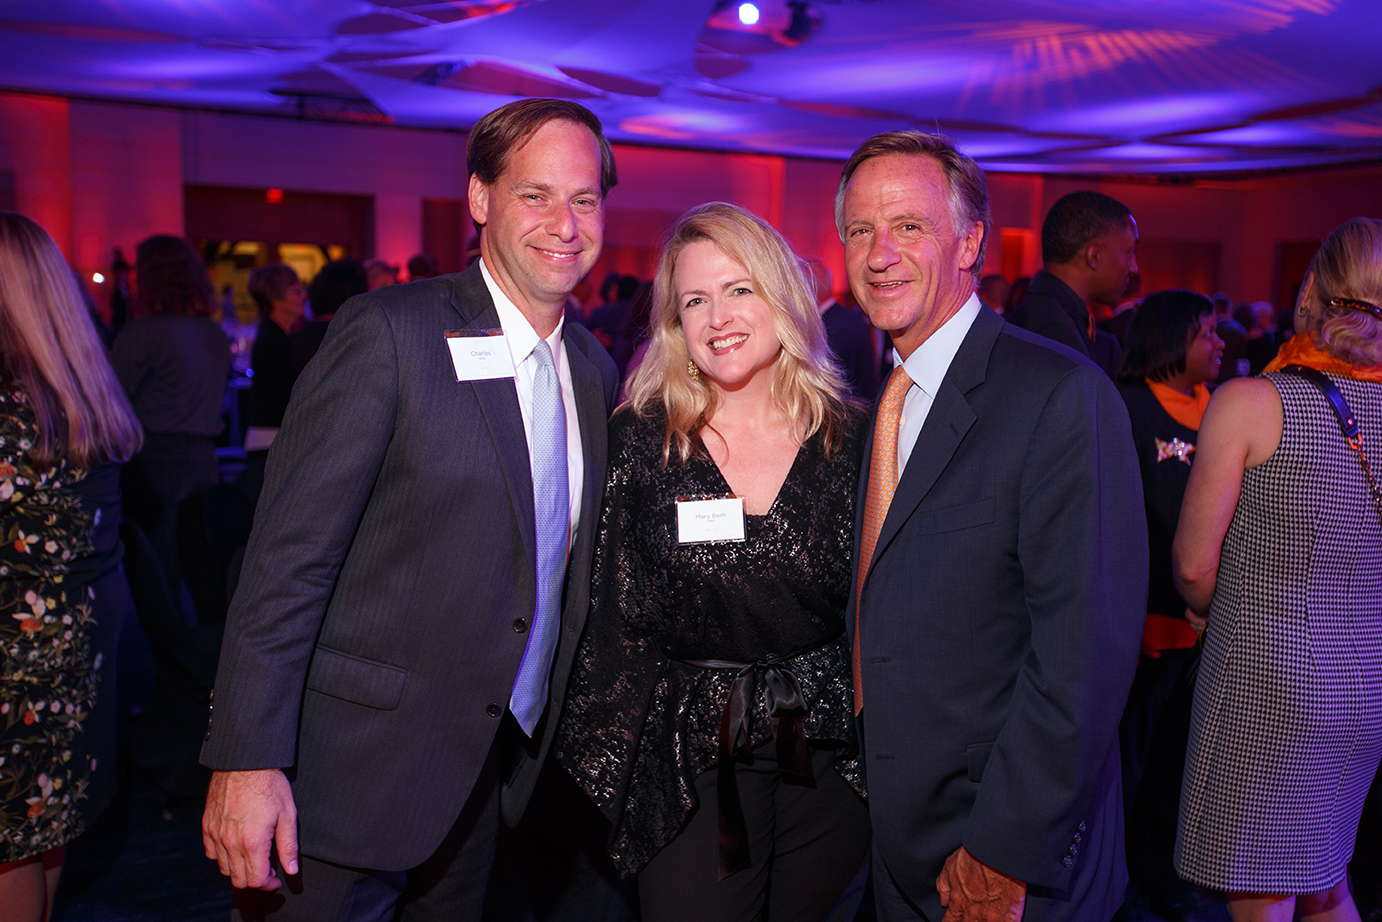 Wests with Governor Haslam